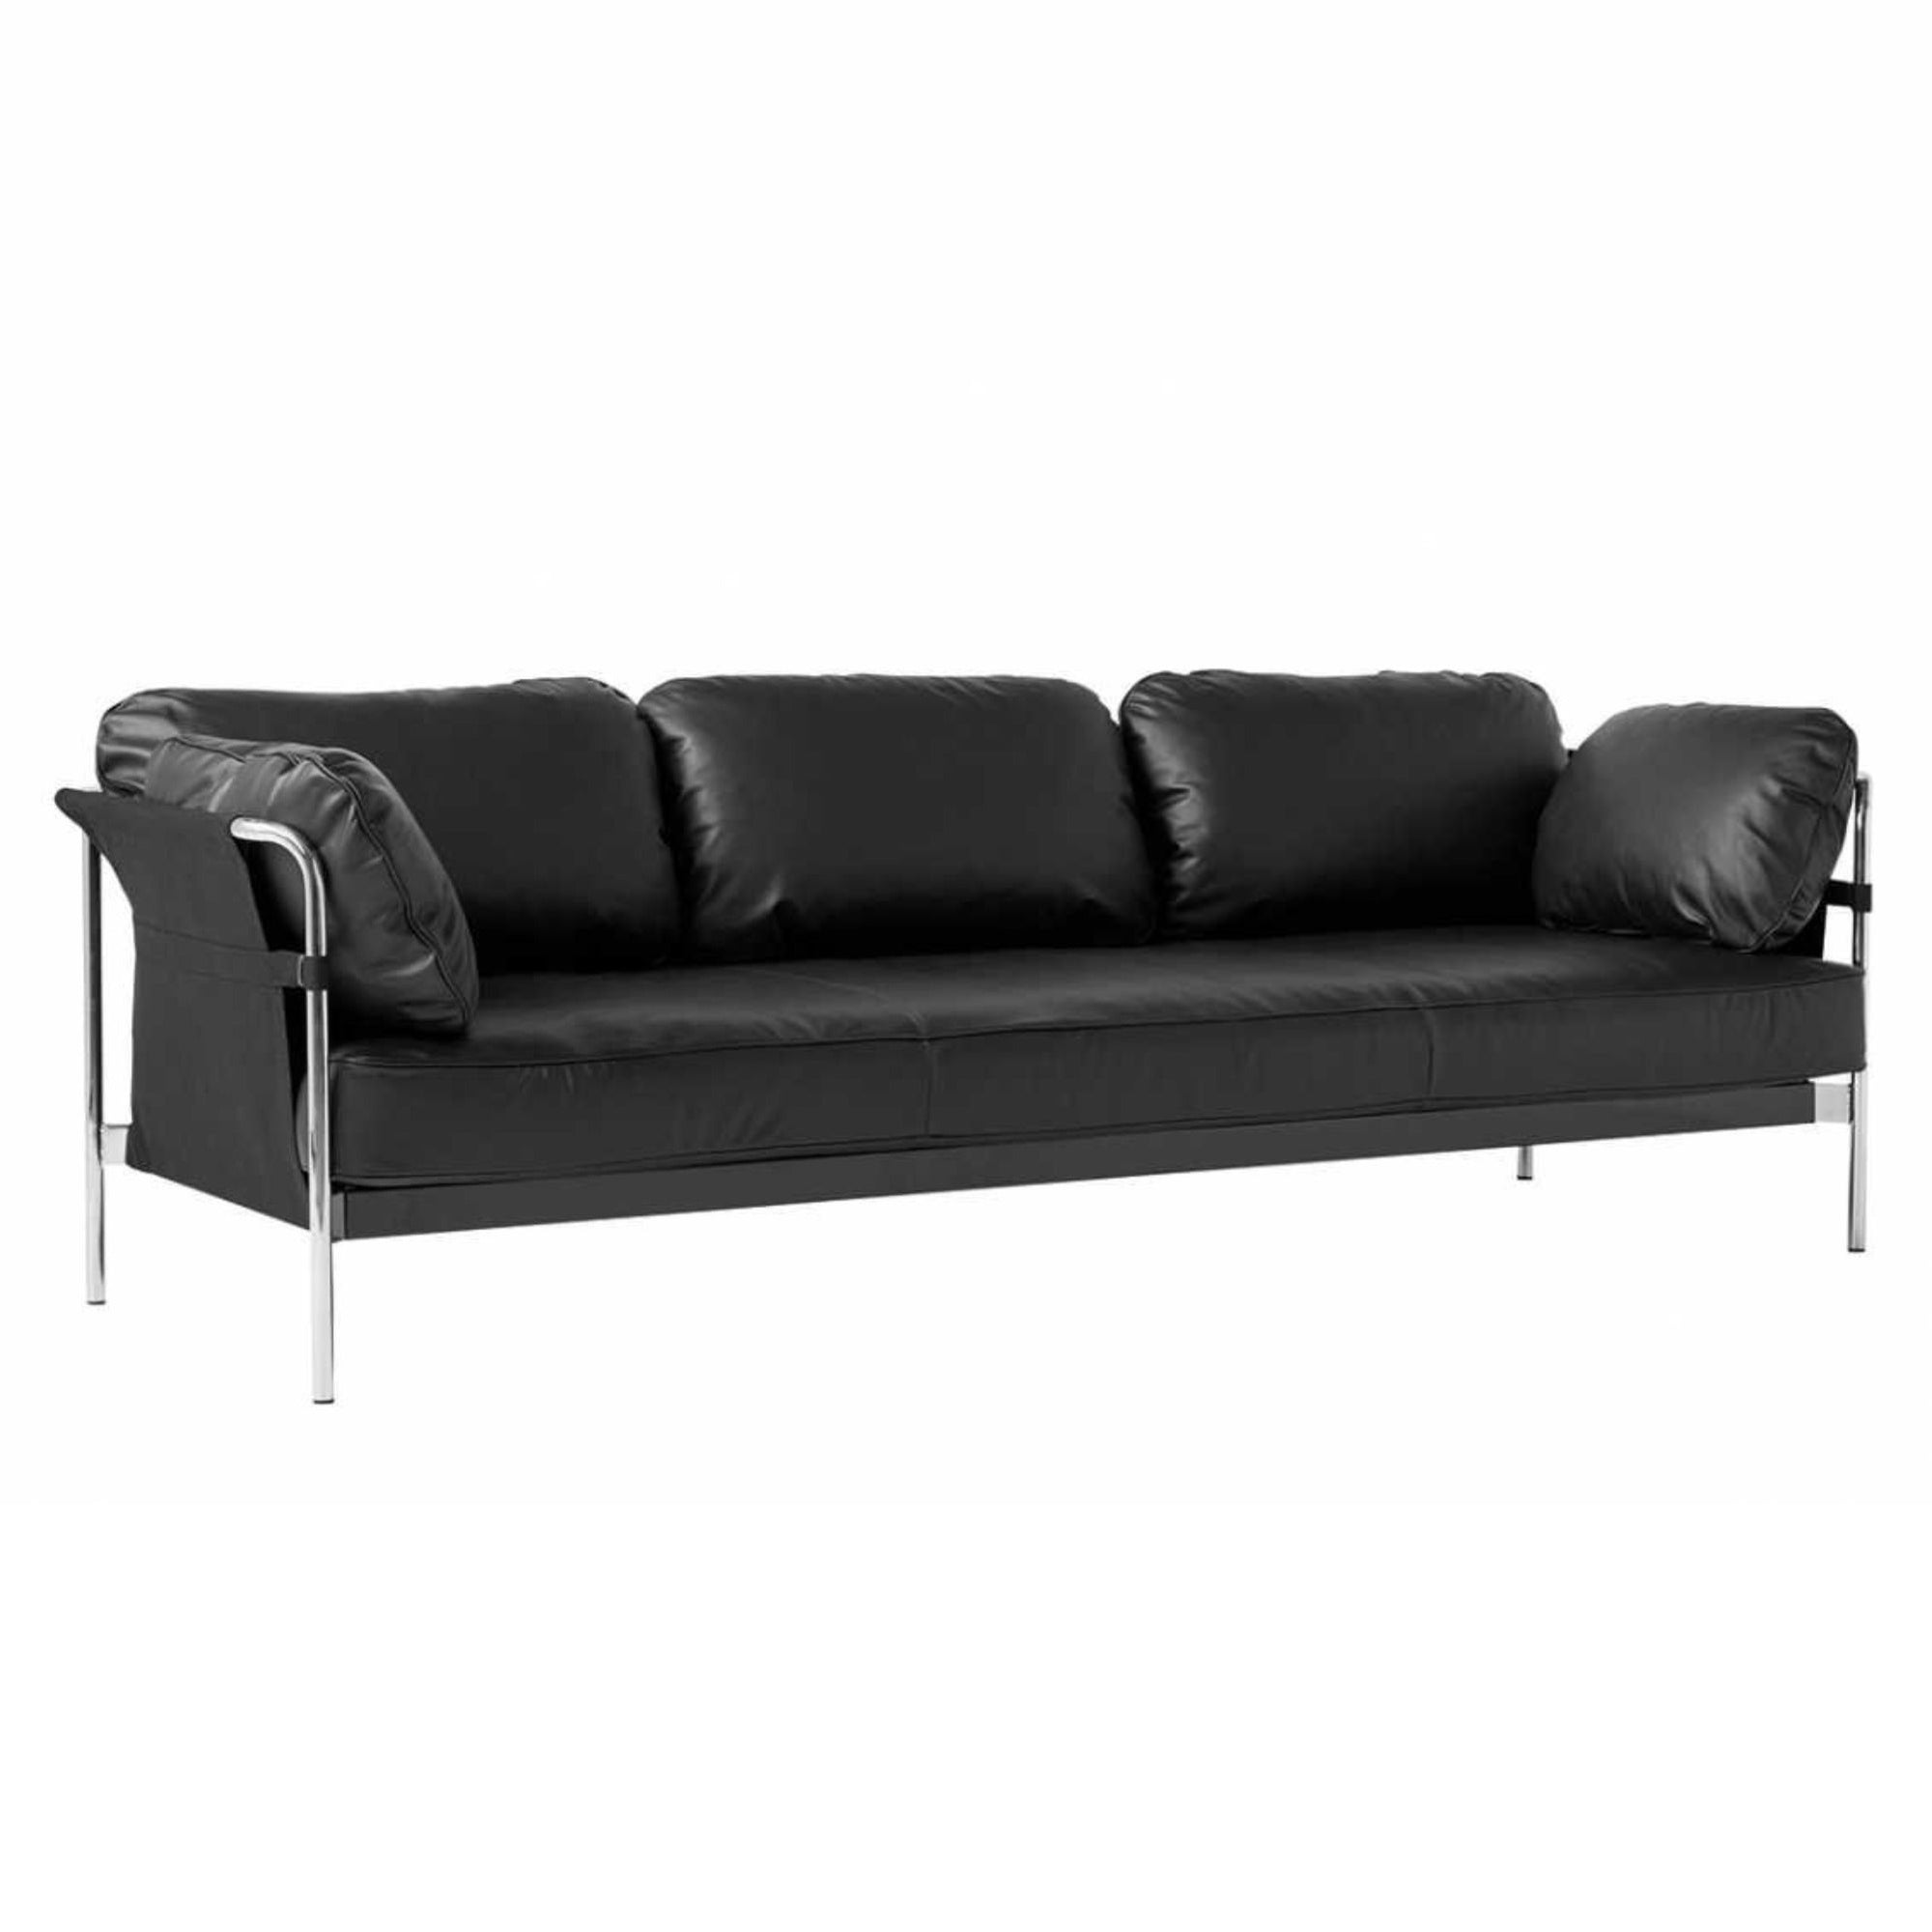 HAY Can 3-Seater Sofa 2.0, chrome - black - silk0842